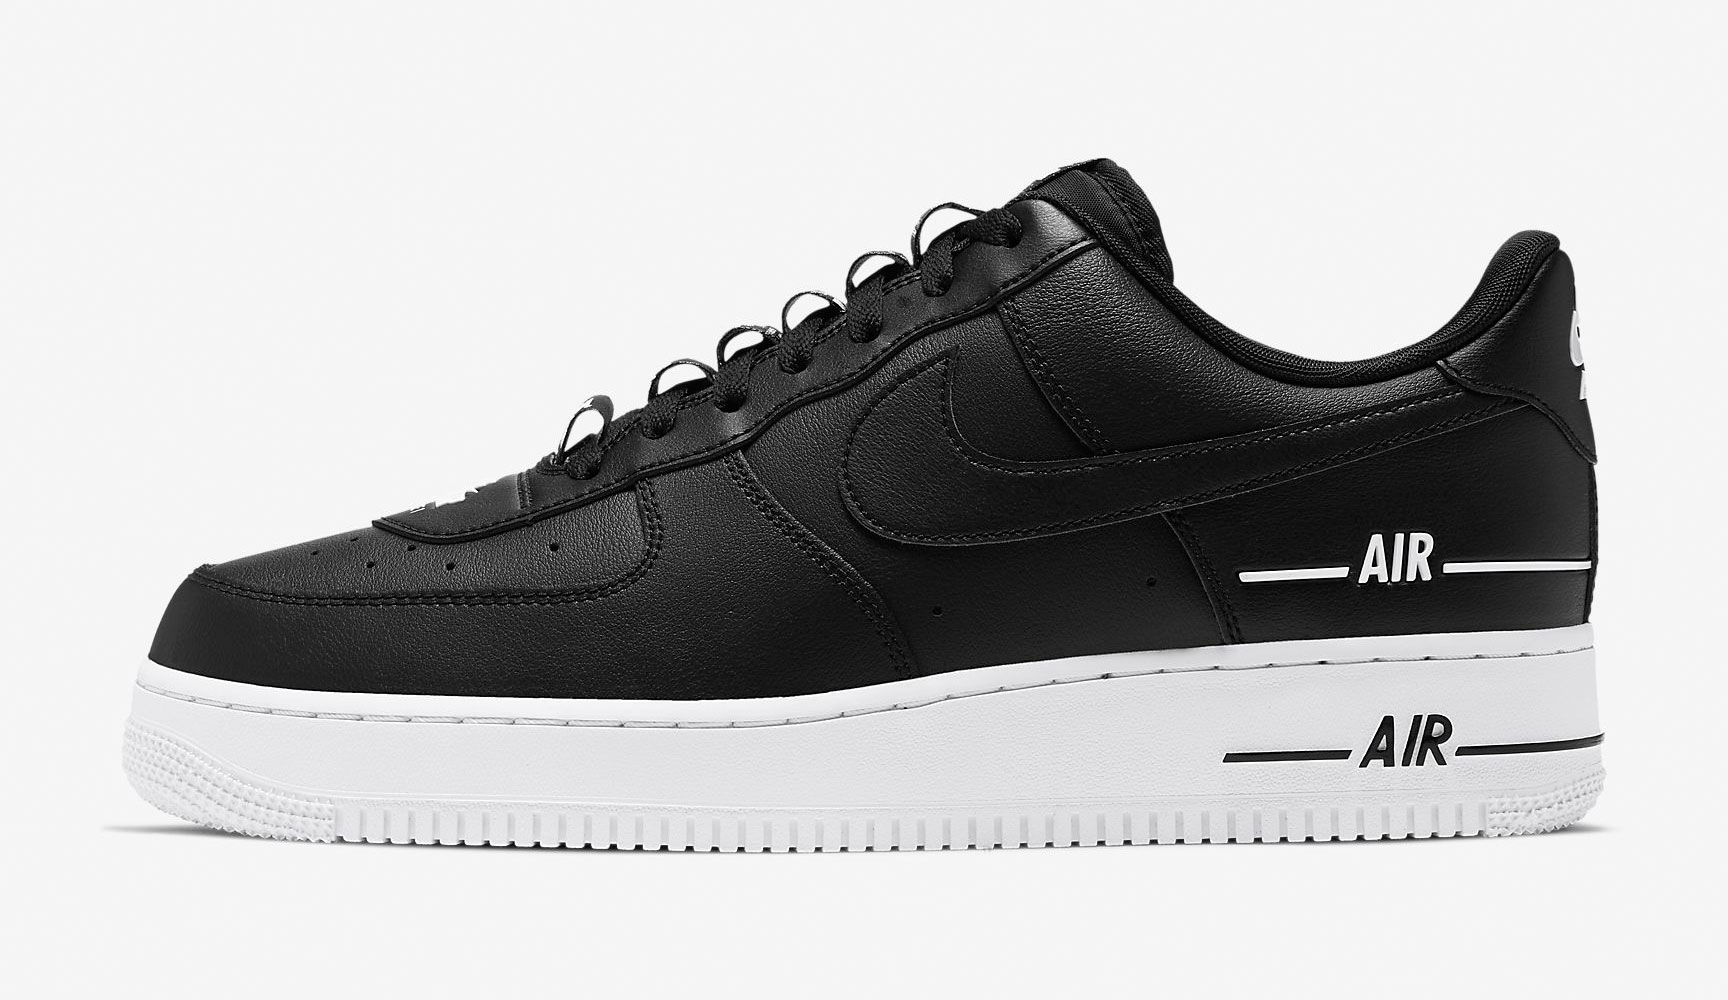 nike-air-force-1-07-low-added-air-black-white-release-date